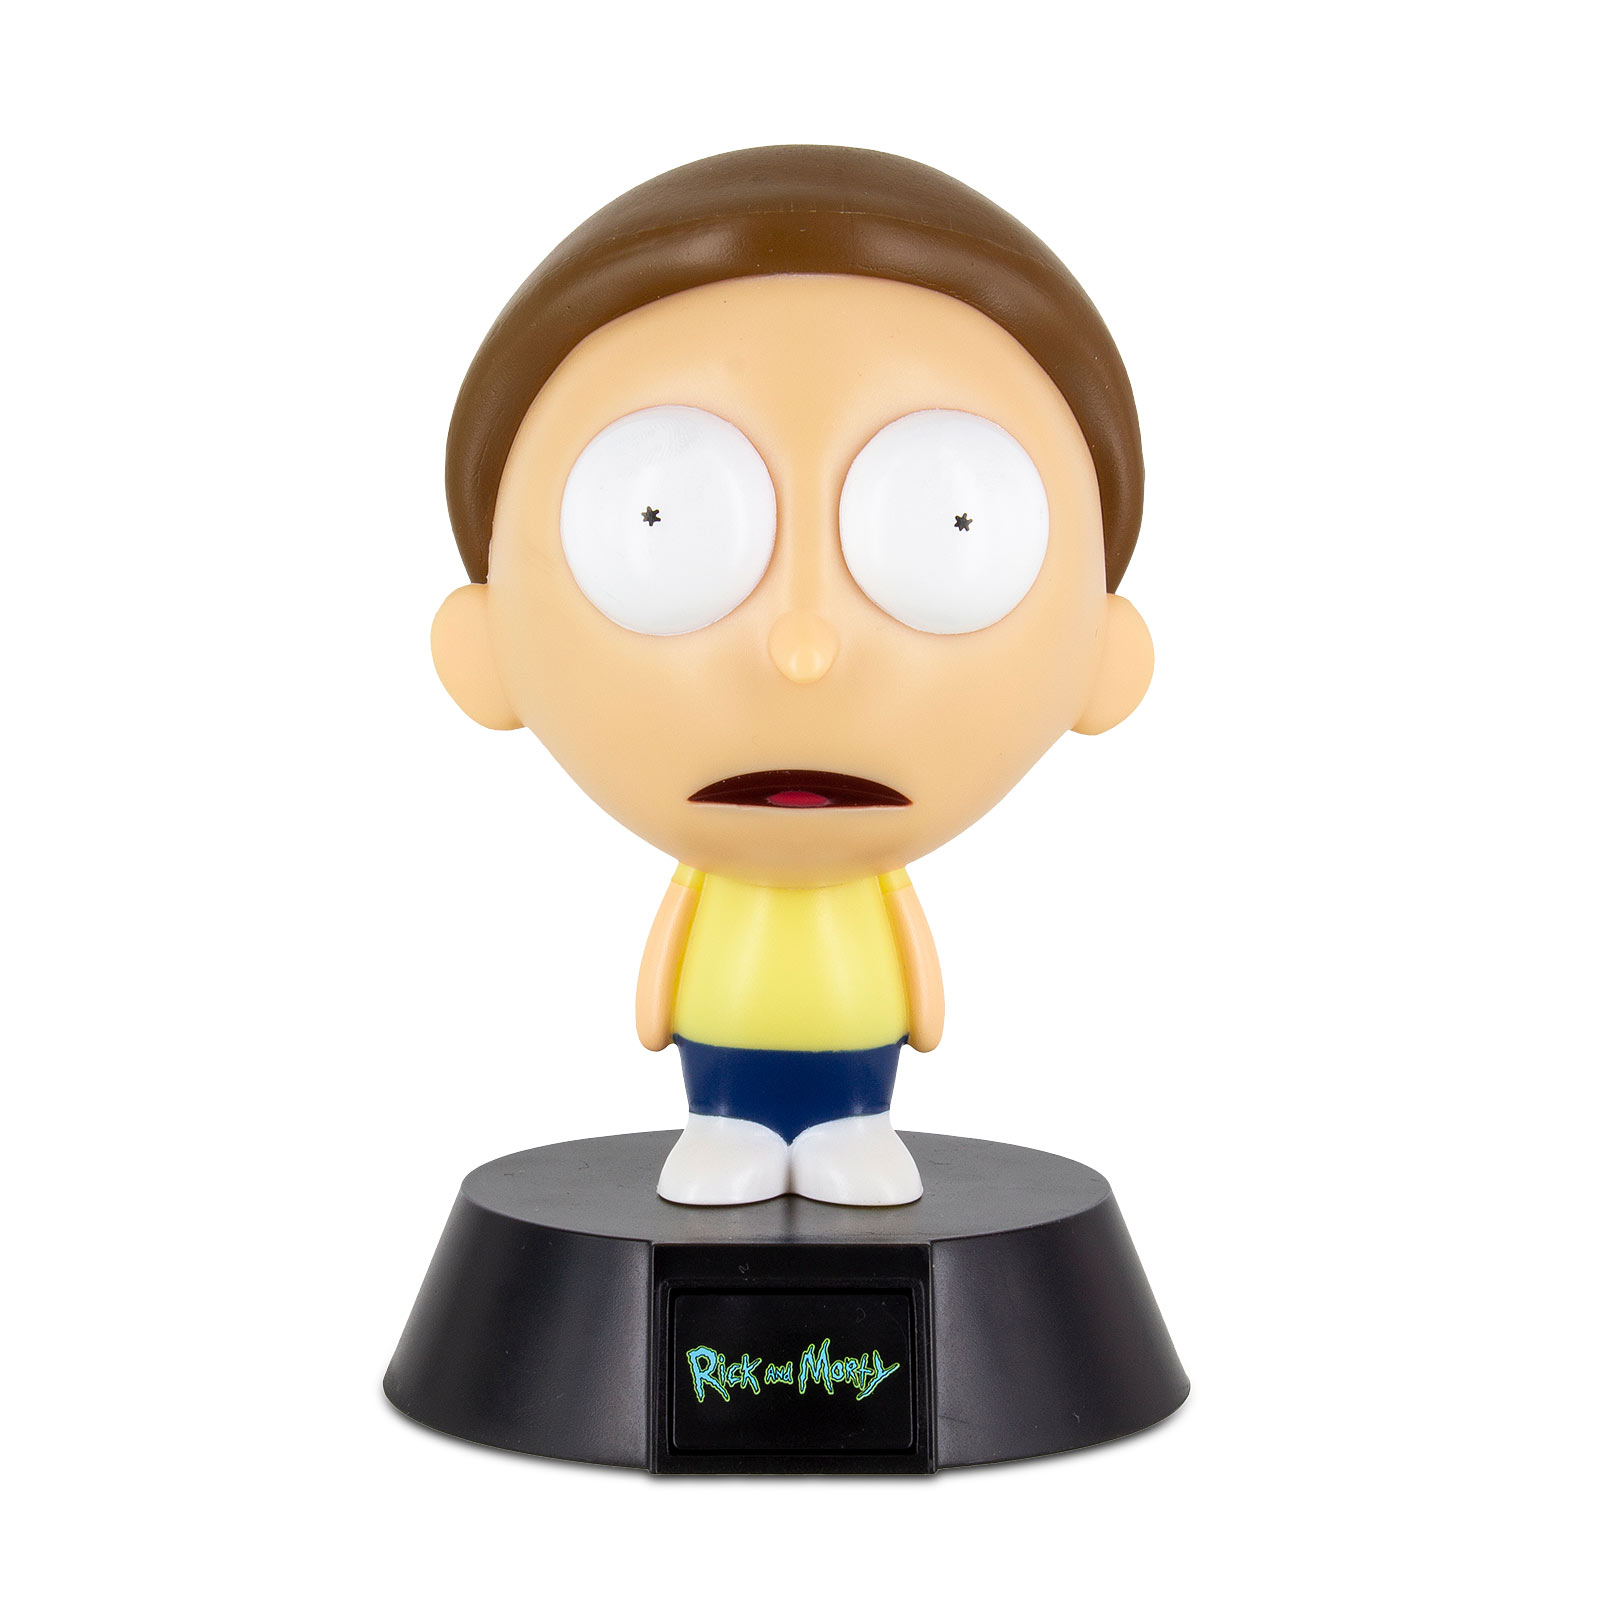 Rick and Morty - Morty Icons 3D Tischlampe